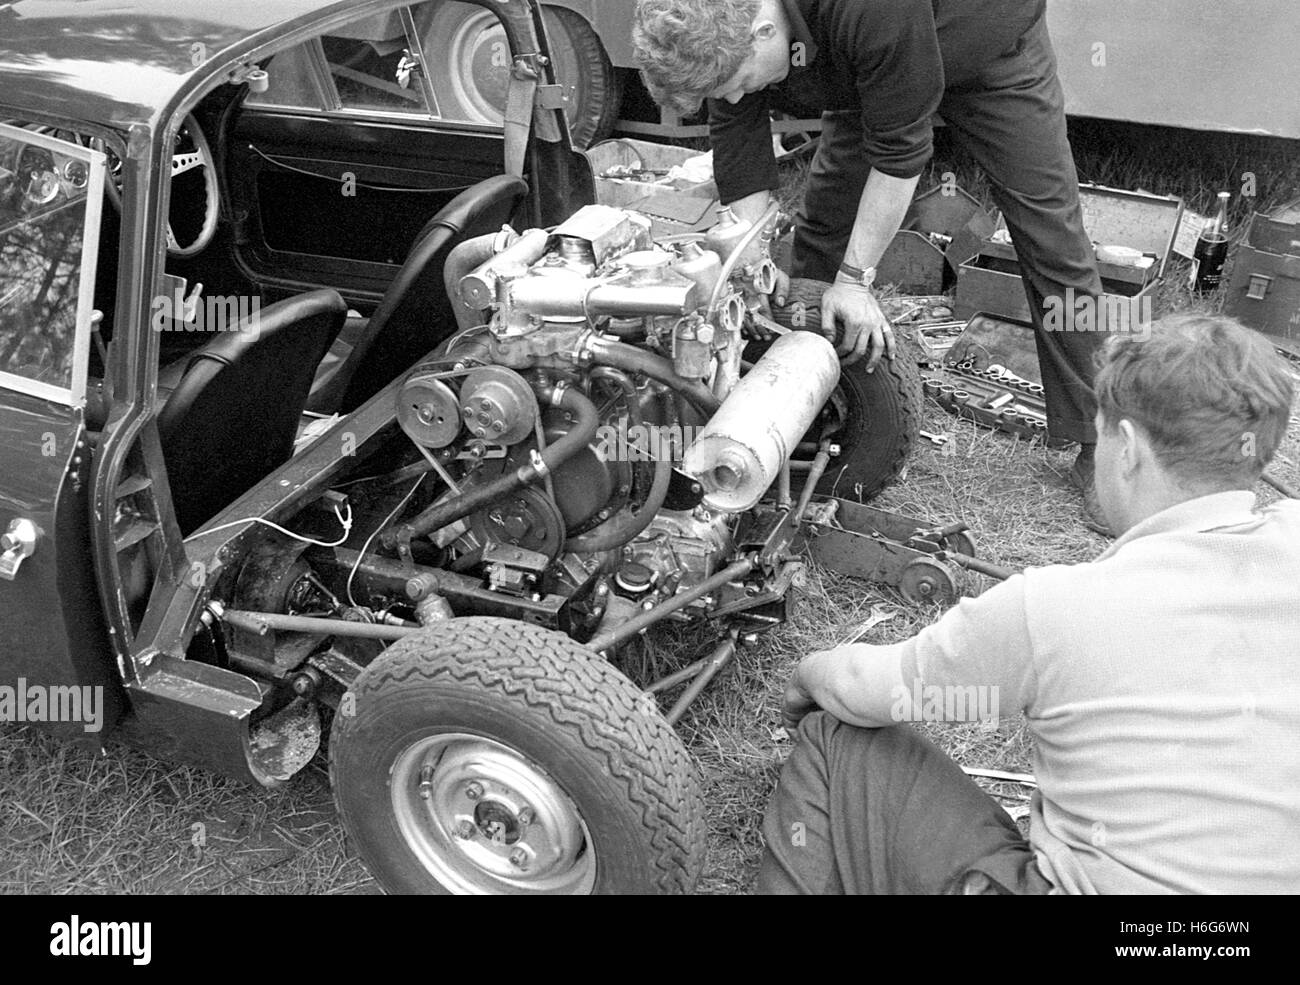 DS301  Lawrence Motor Rear engine cover removed Le Mans 1963 - Stock Image